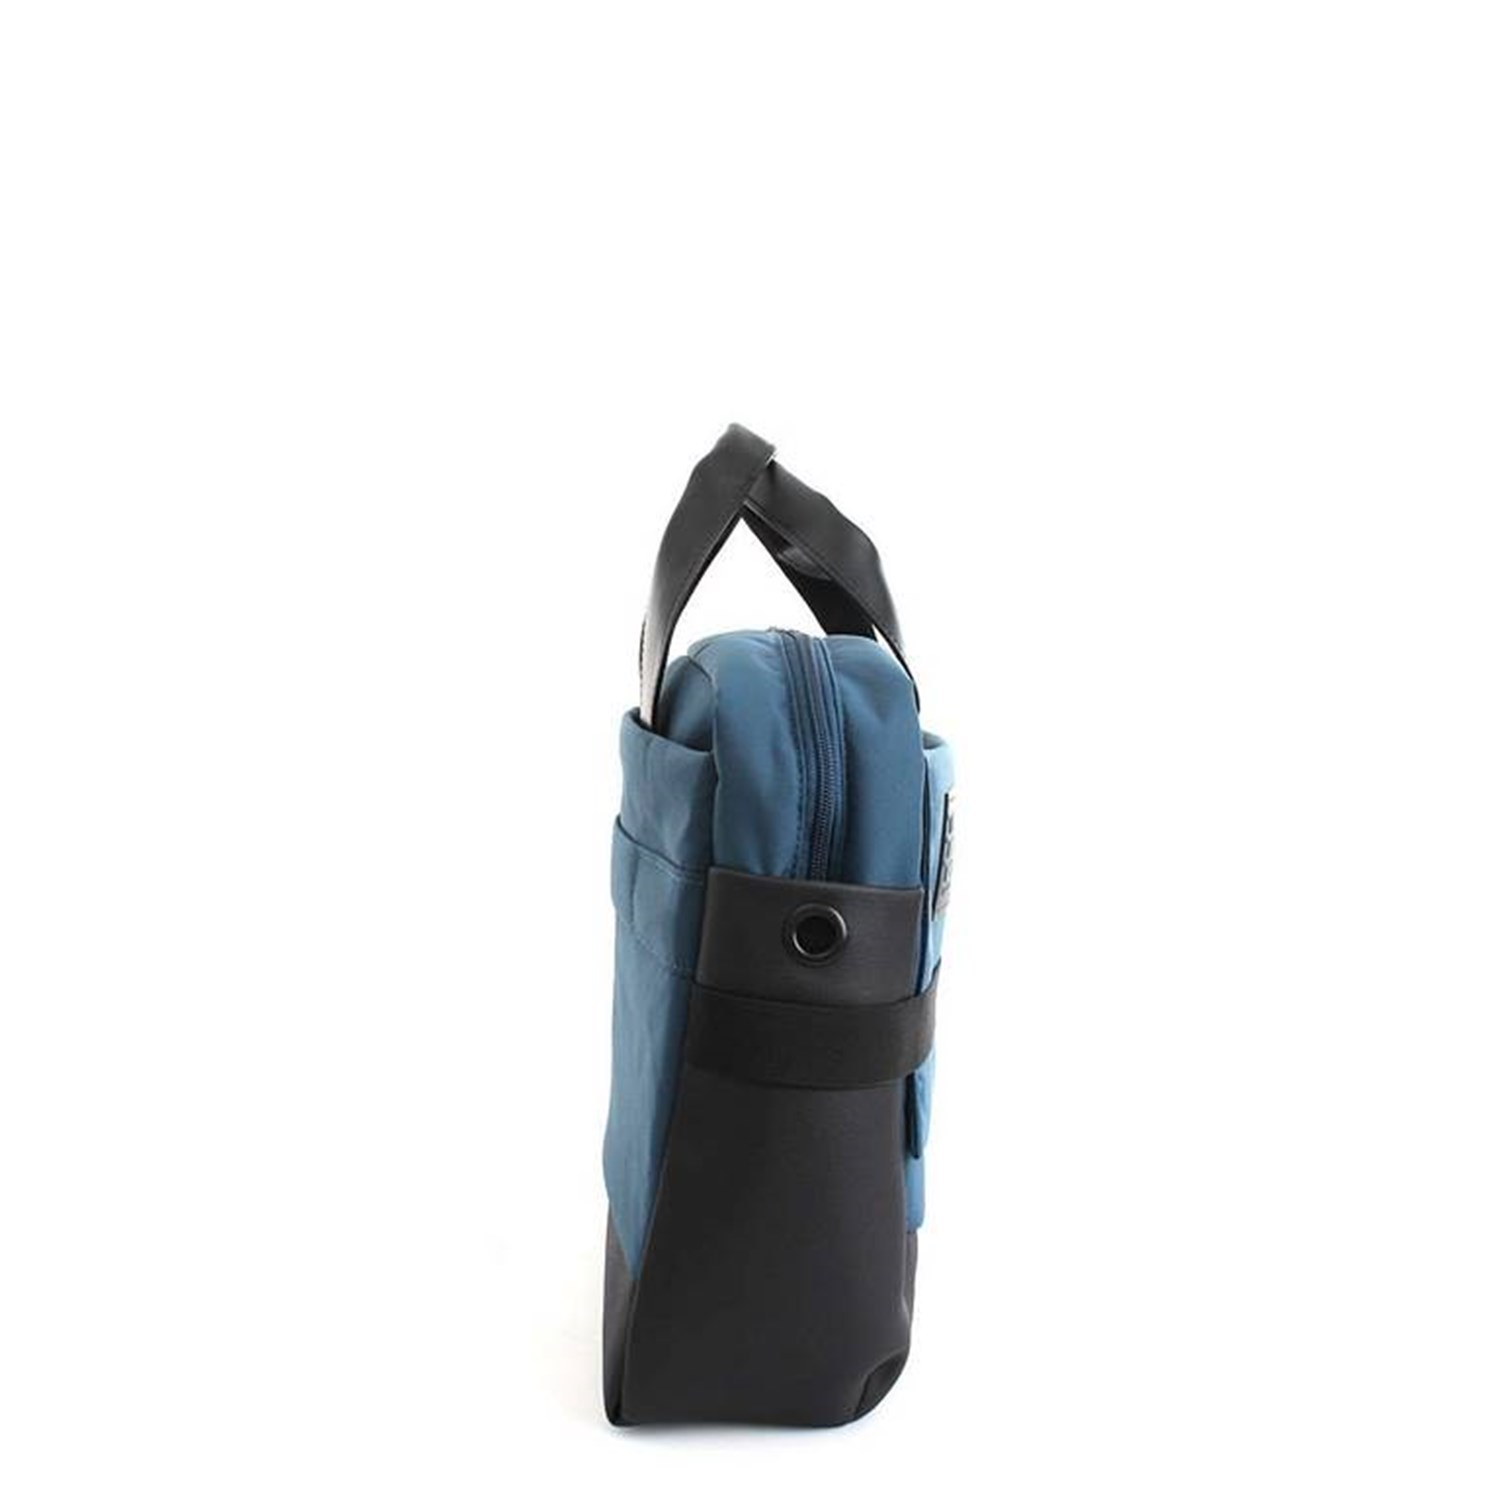 Moleskine Bags Accessories To work LIGHT BLUE 1710401